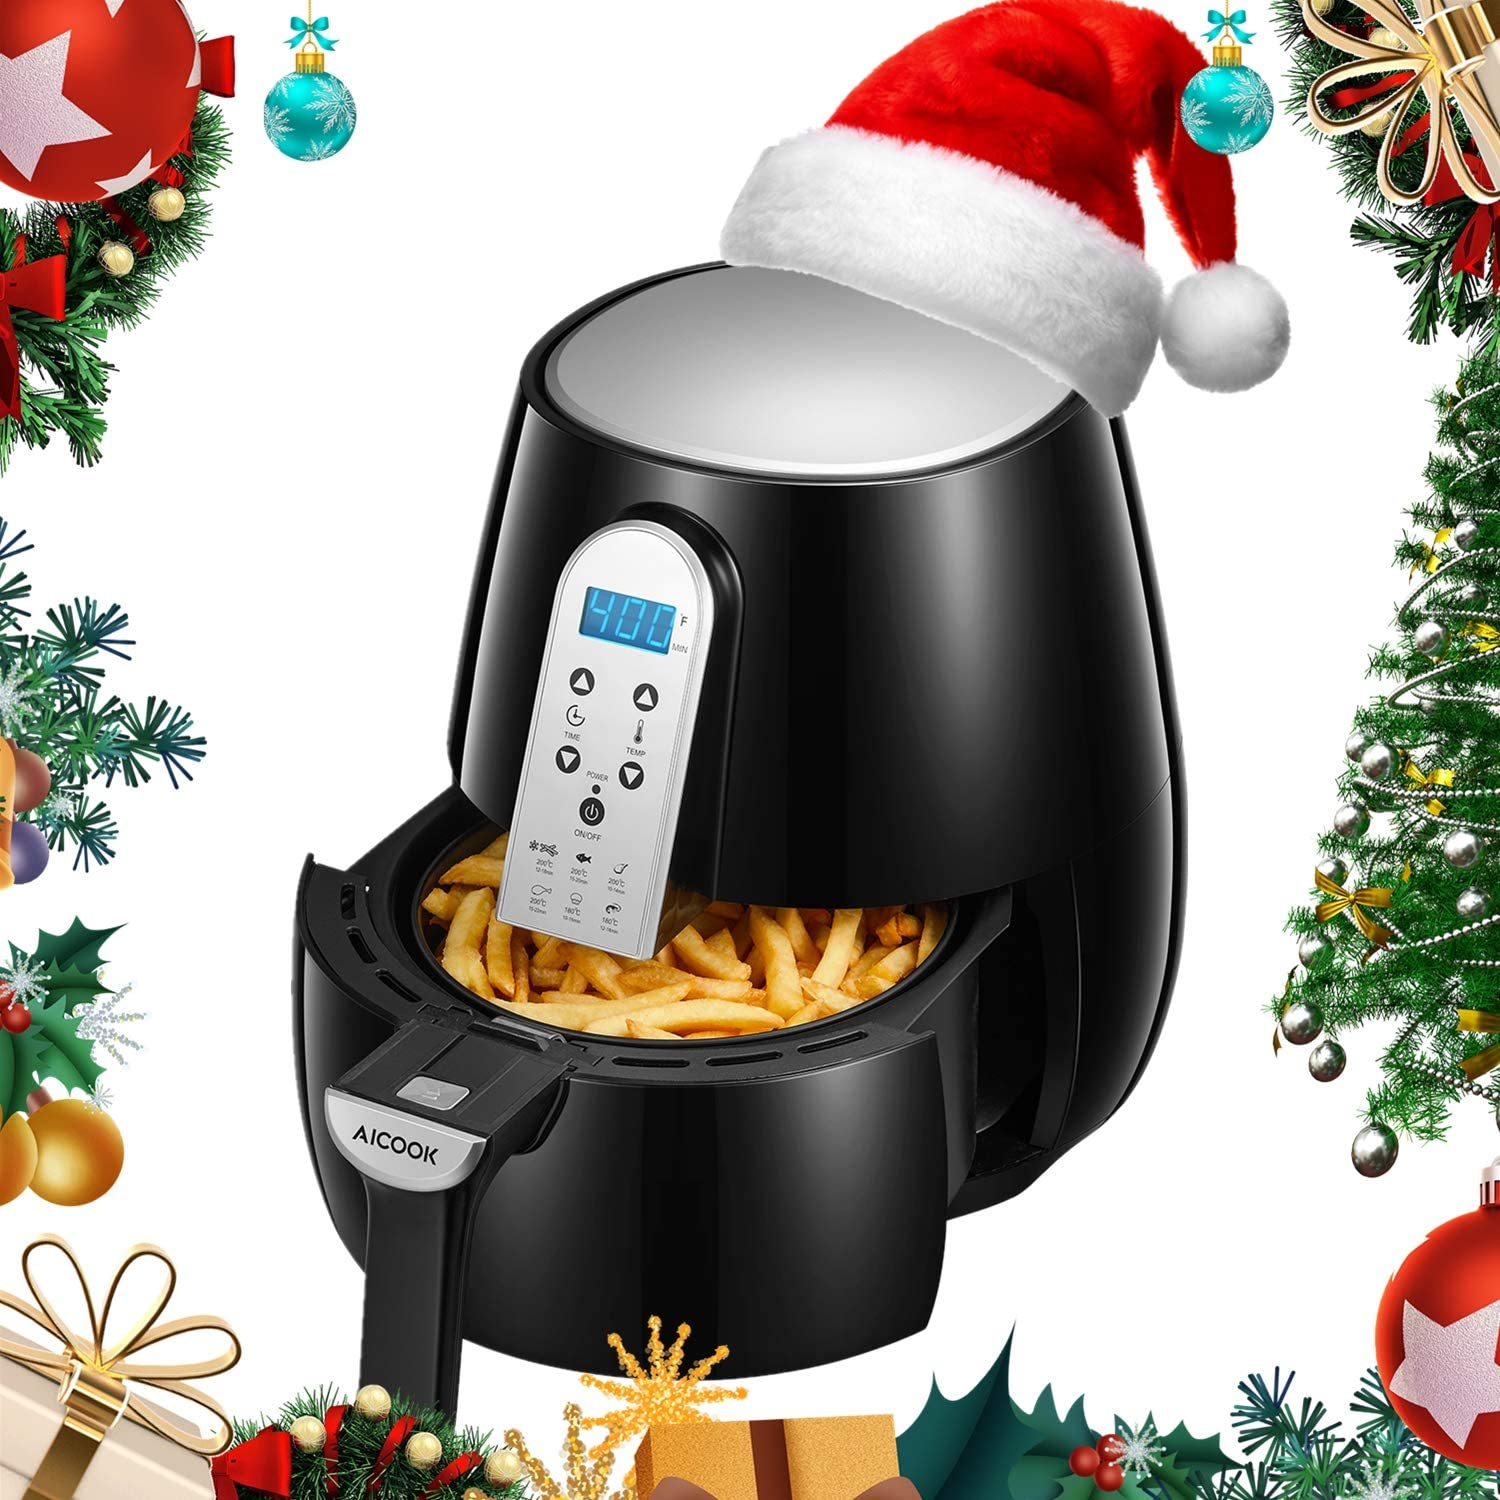 AICOOK Air Fryer, 4.5QT Electric Hot Air Fryers 1500-Watt Electric Hot XL Air Fryers Oven Oilless Cooker with LCD Digital Screen and Nonstick Frying Pot, ETL Certified with Recipes, Holiday Gift Choice